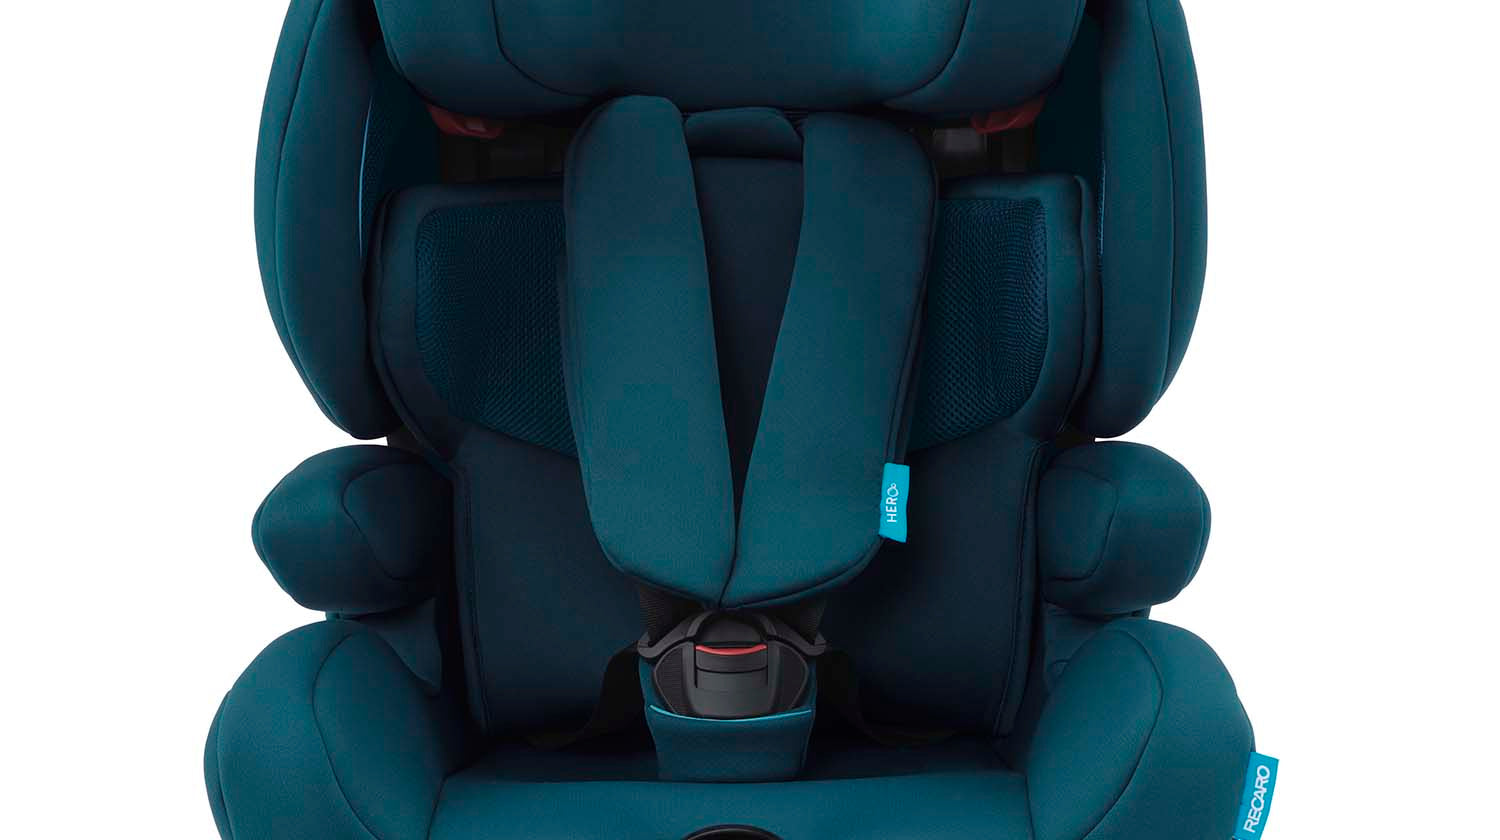 car-seat-tian-elite-design-image-6.jpg